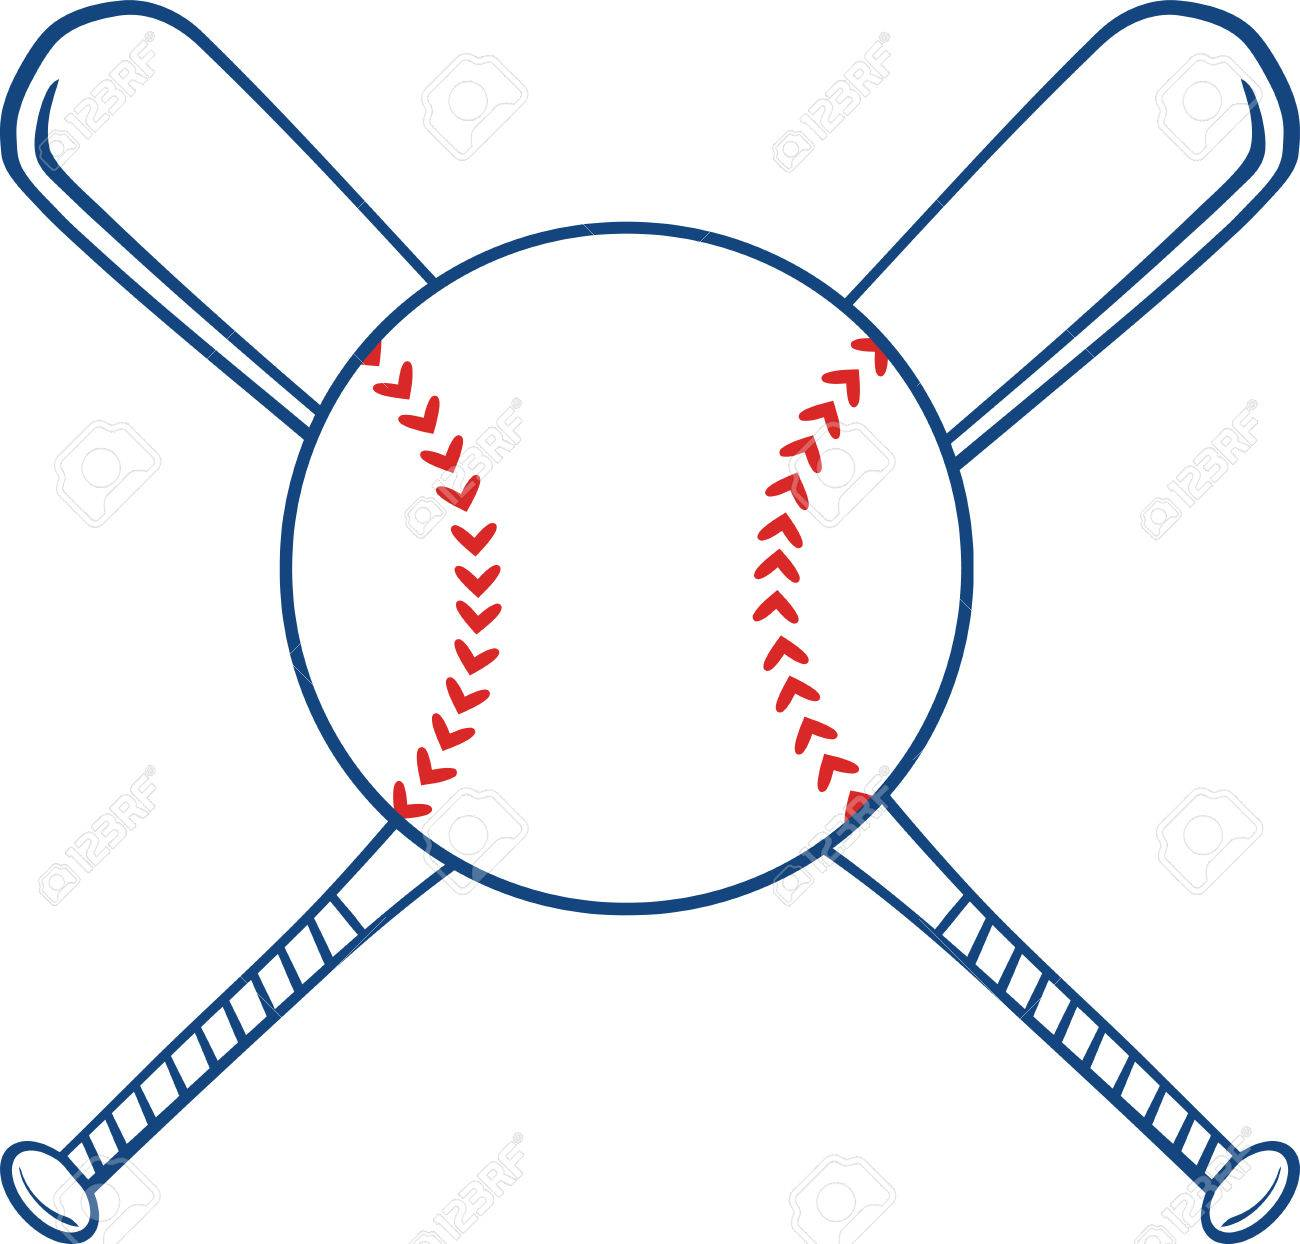 two crossed baseball bats and ball illustration isolated on rh 123rf com crossed softball bats clipart